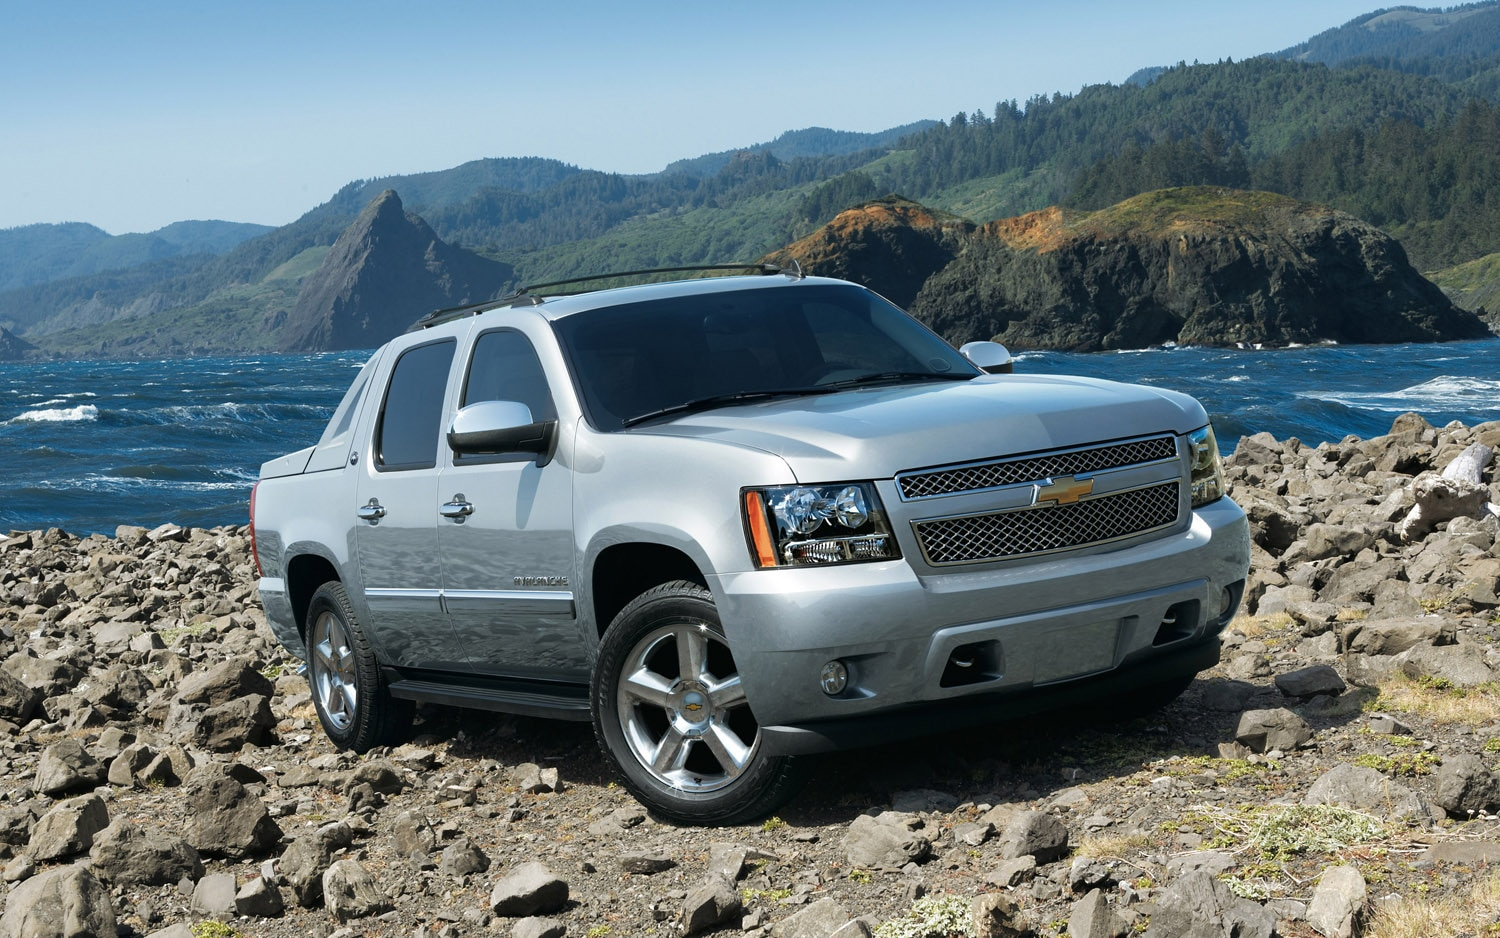 2013 Chevrolet Avalanche Black Diamond Front Three Quarter1